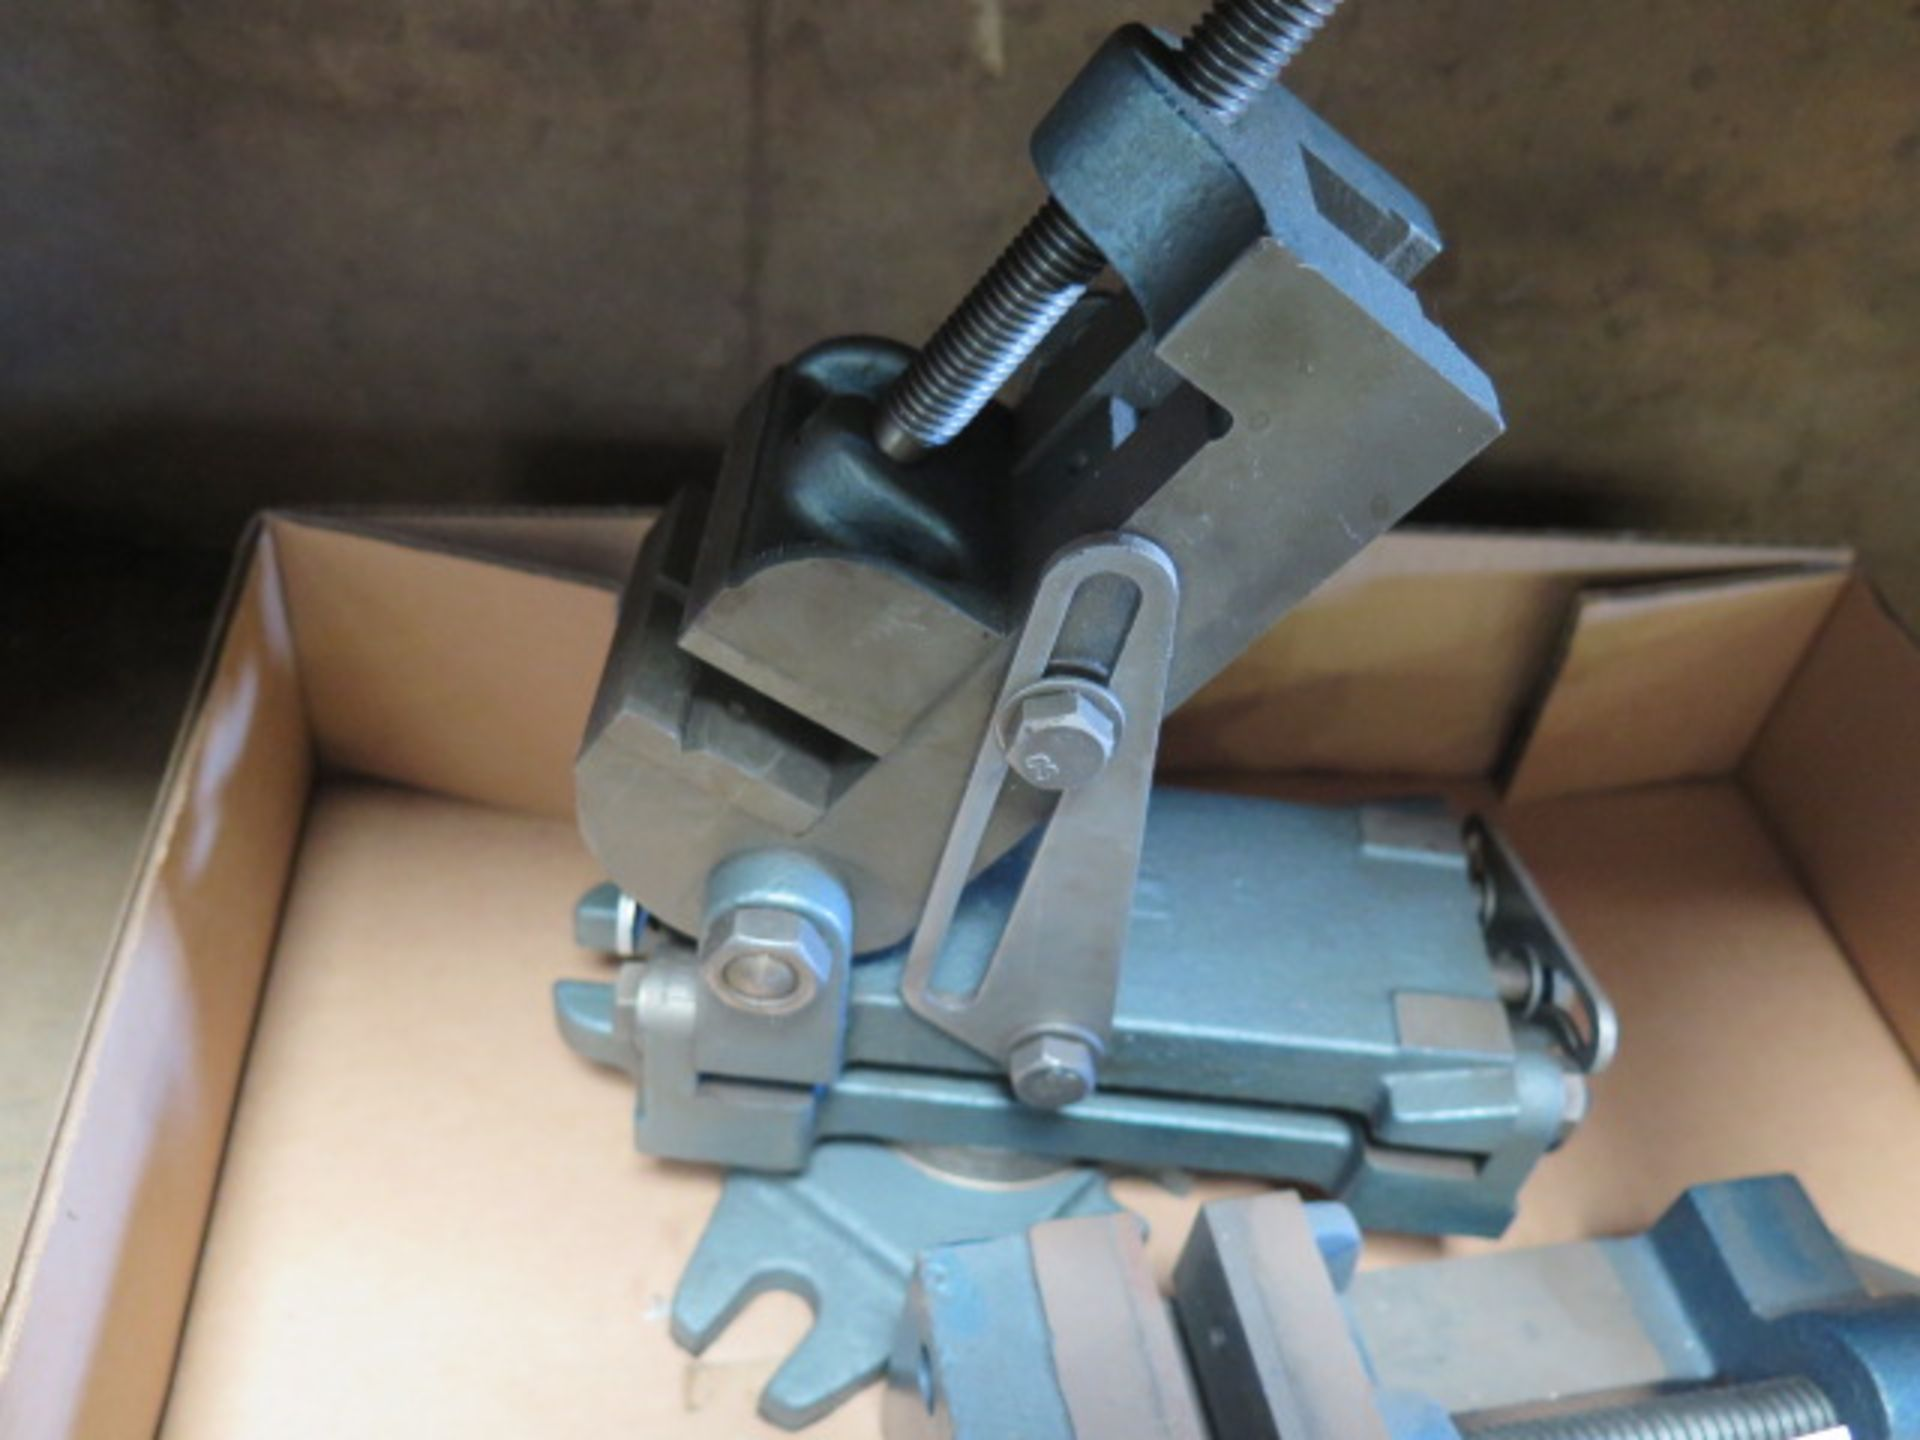 Lot 120 - Machine Vises (2)